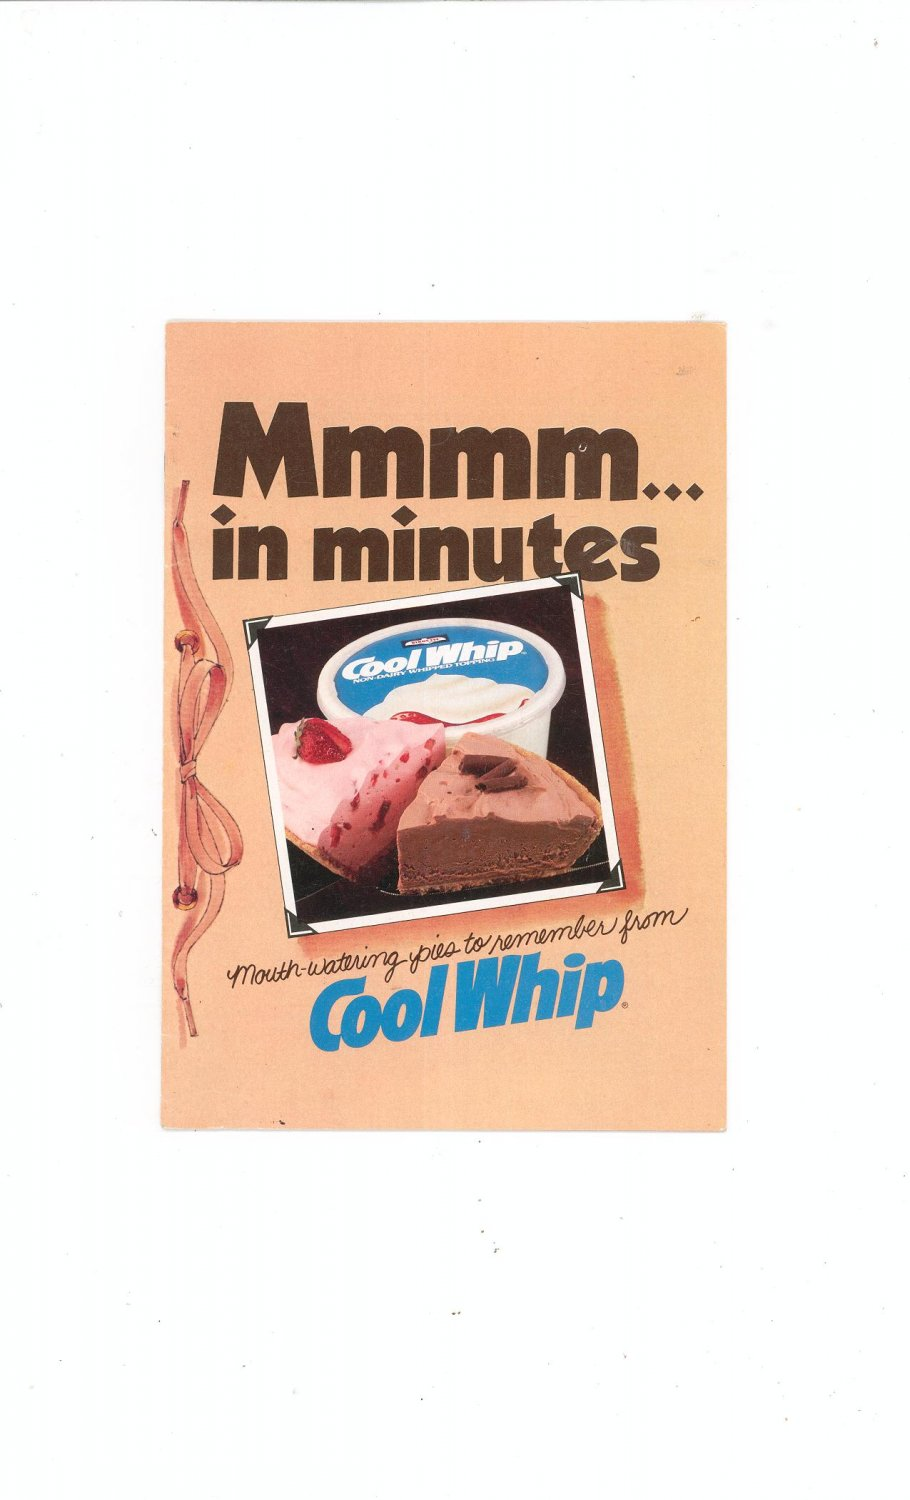 Mmmm In Minutes Recipes / Cookbook by Cool Whip Pies 1981